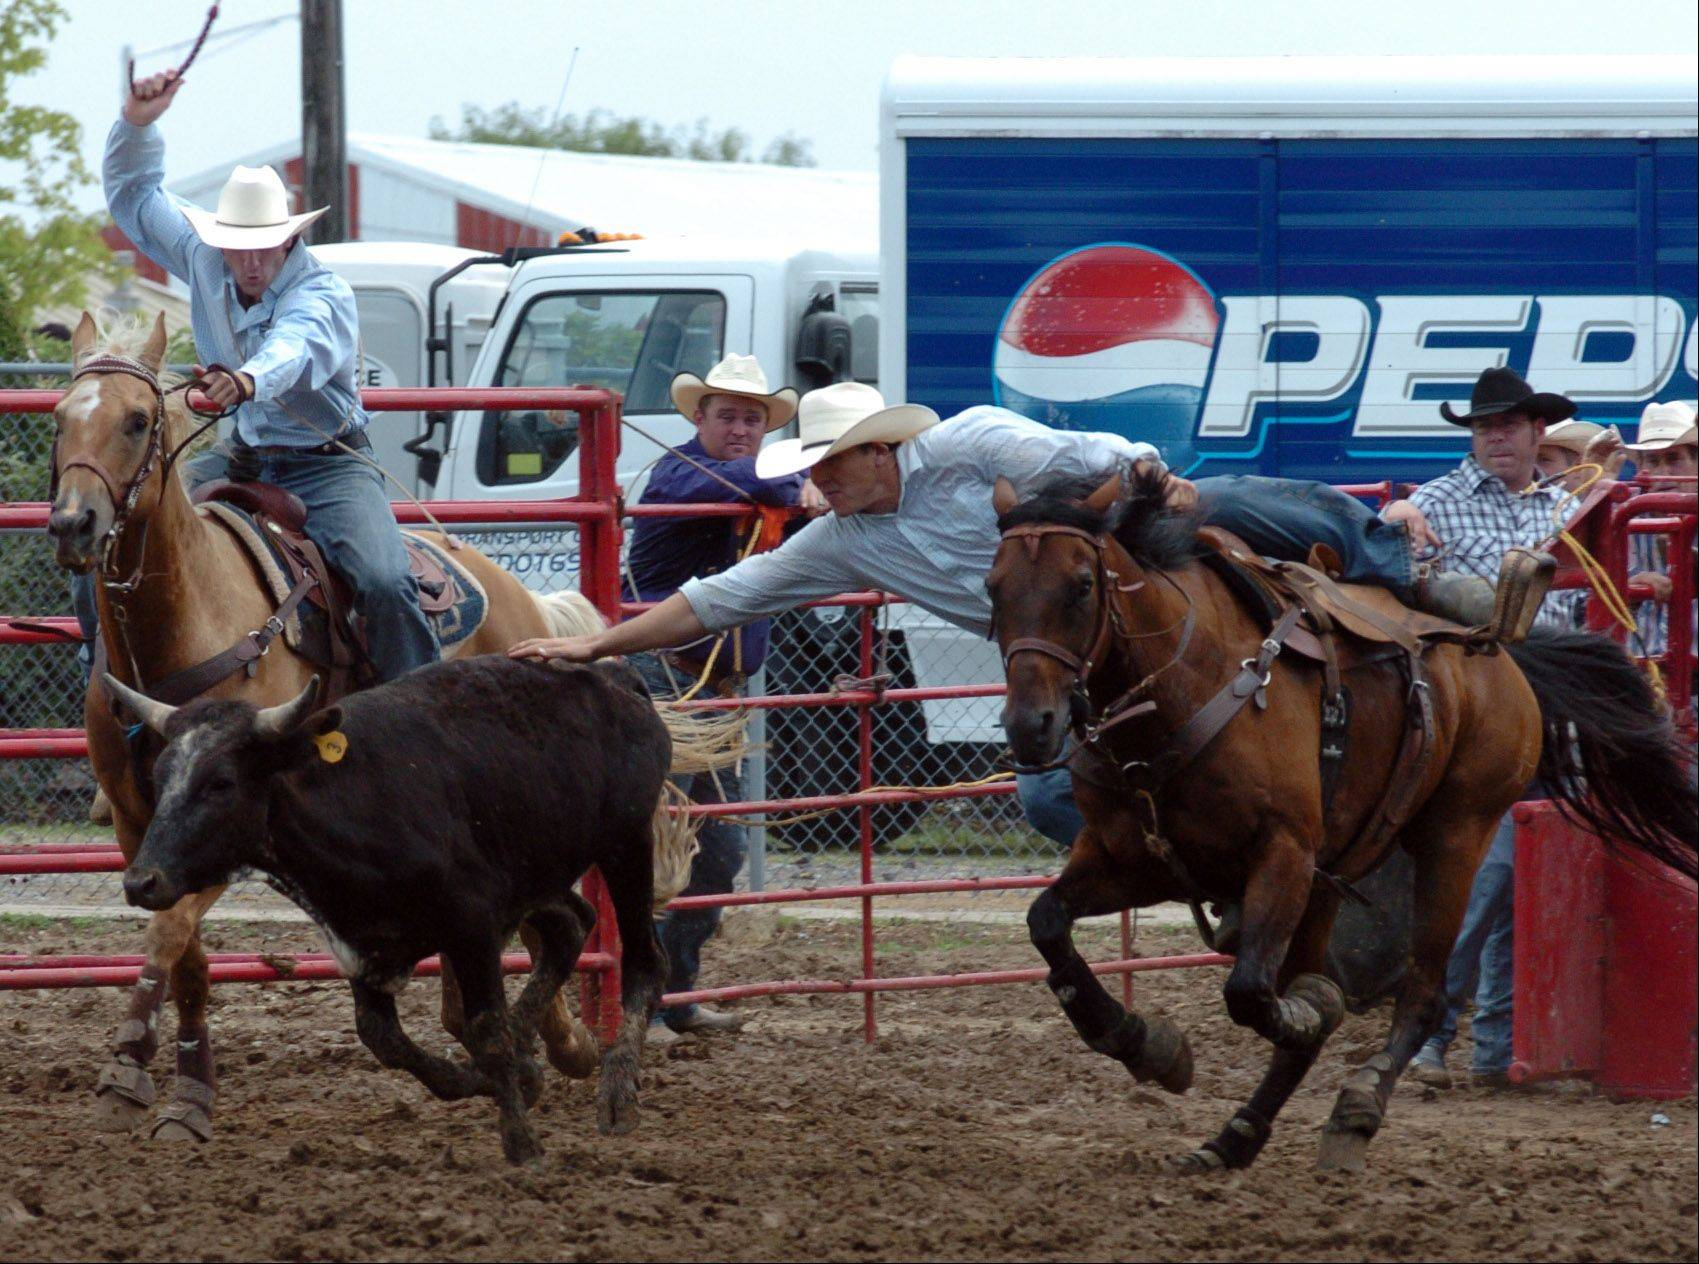 Just Thigpen of Waycross, Ga., competes in the steer wrestling event at the Big Hat Rodeo at last year's Kane County Fair.